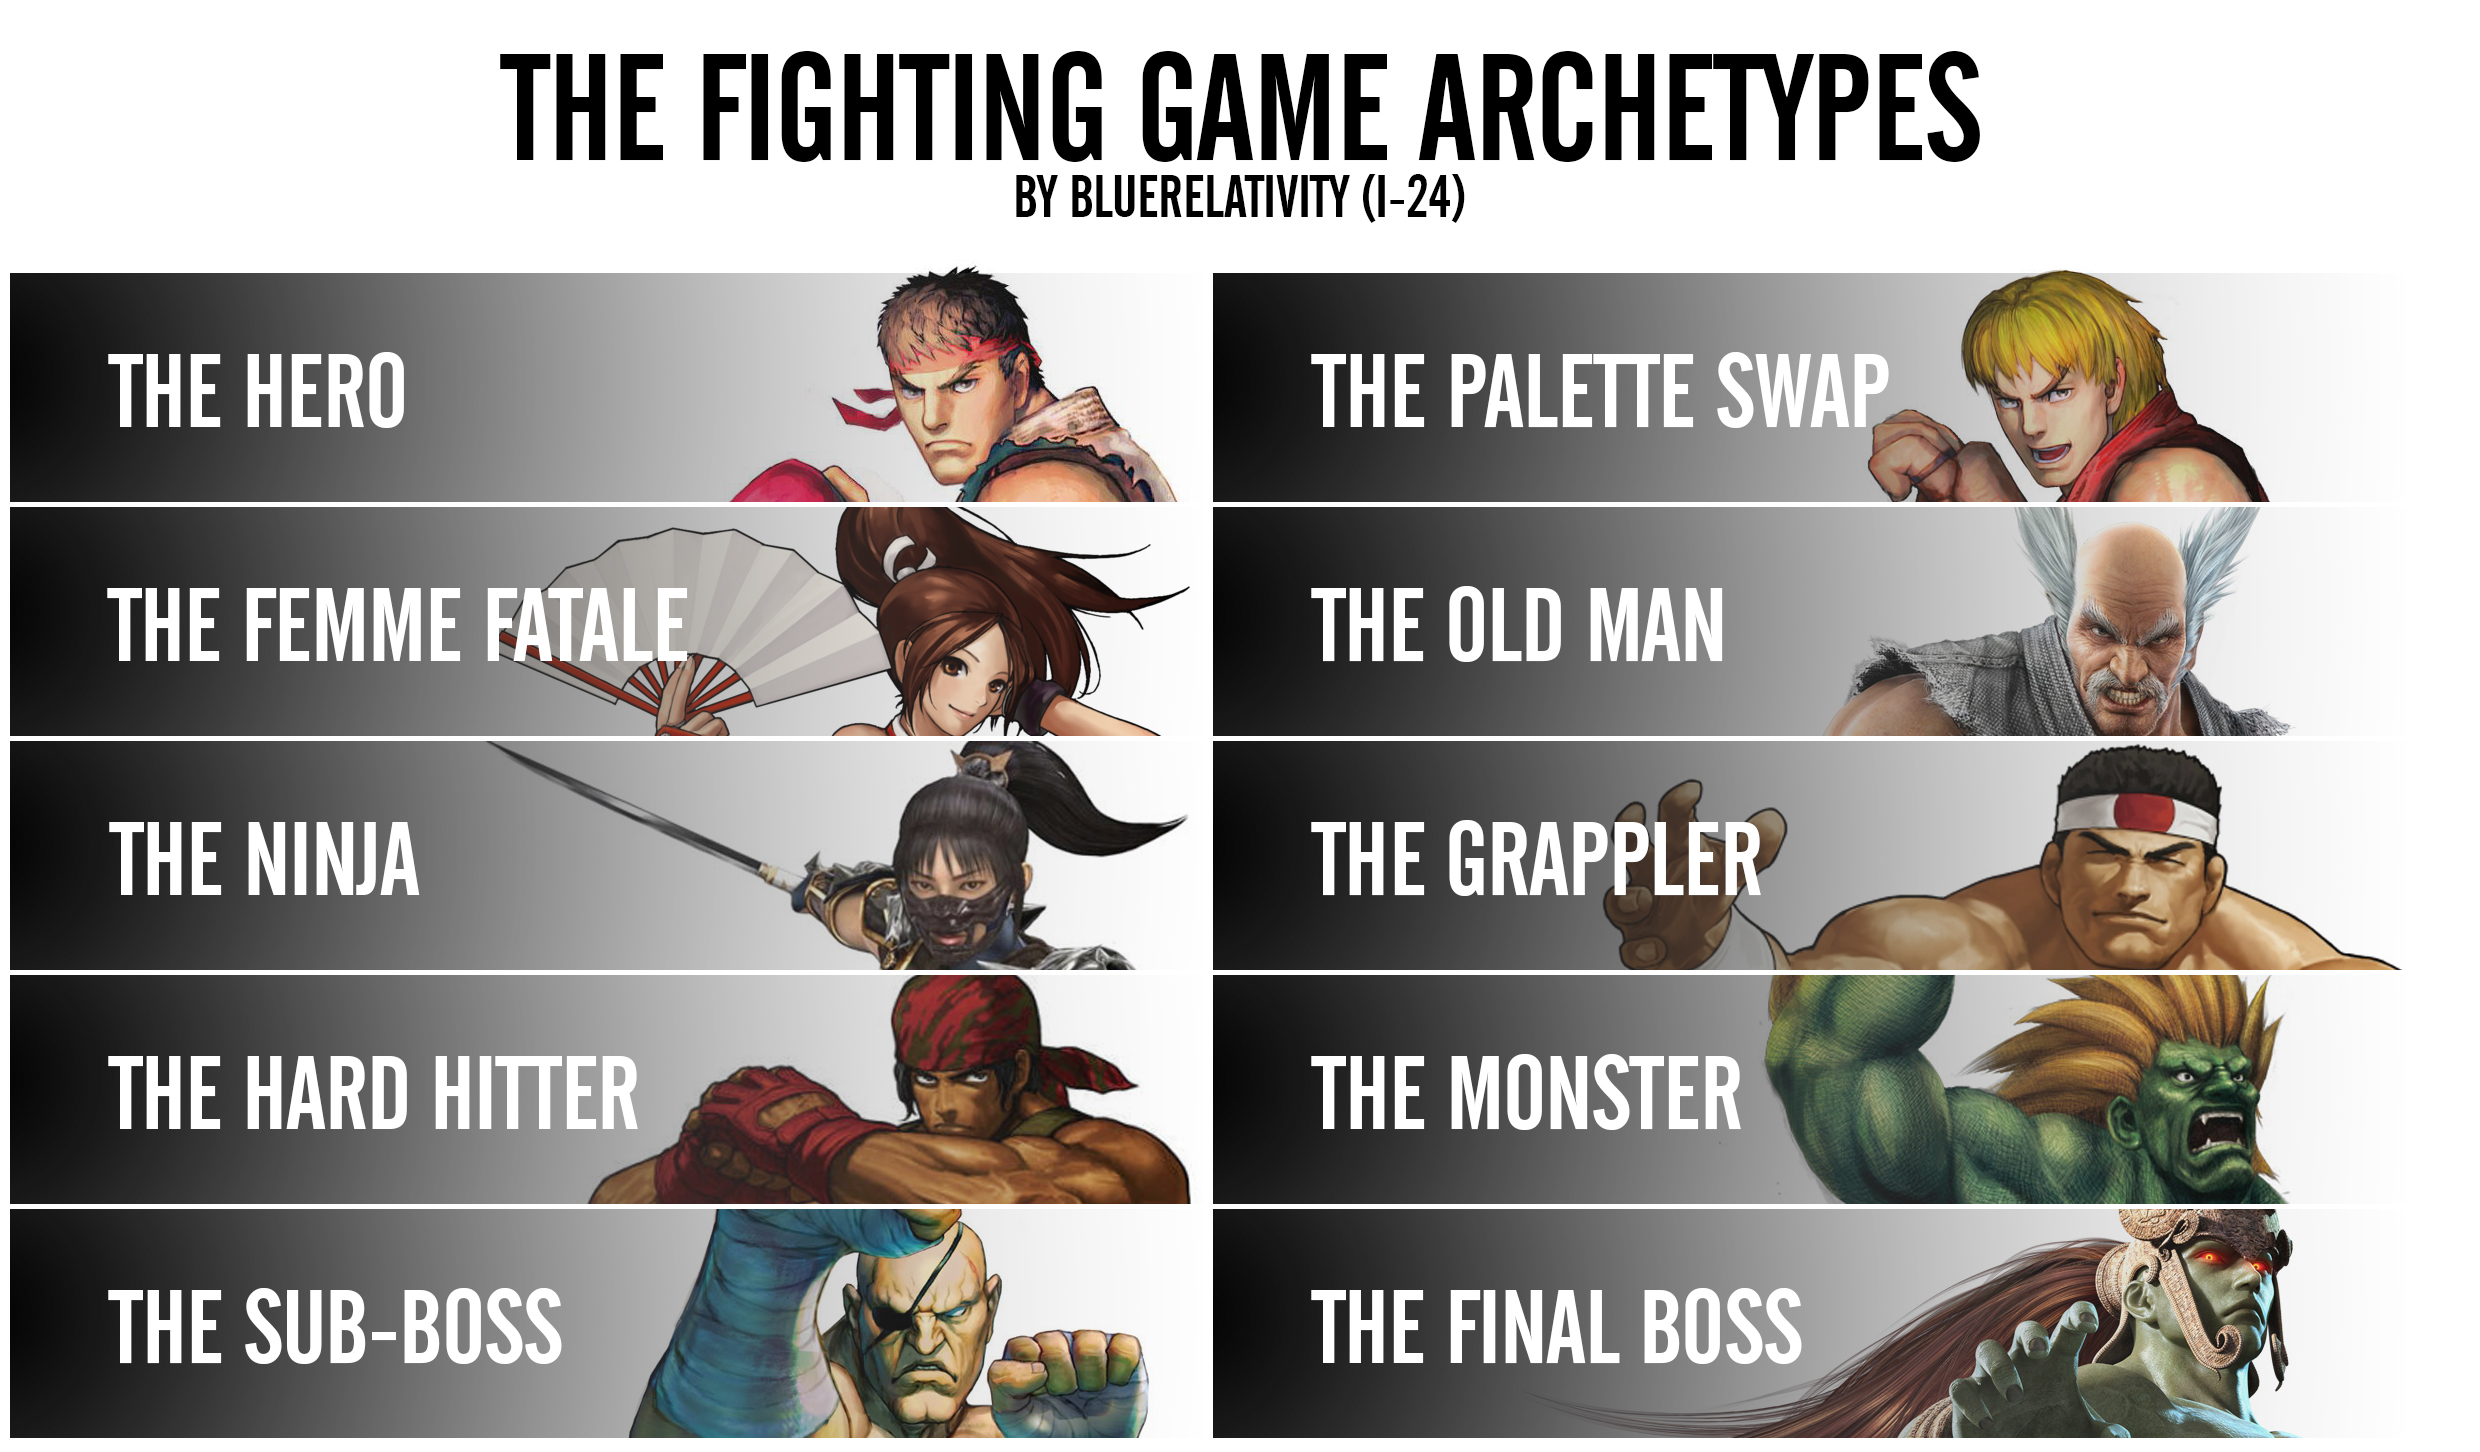 The Fighting Game Archetypes